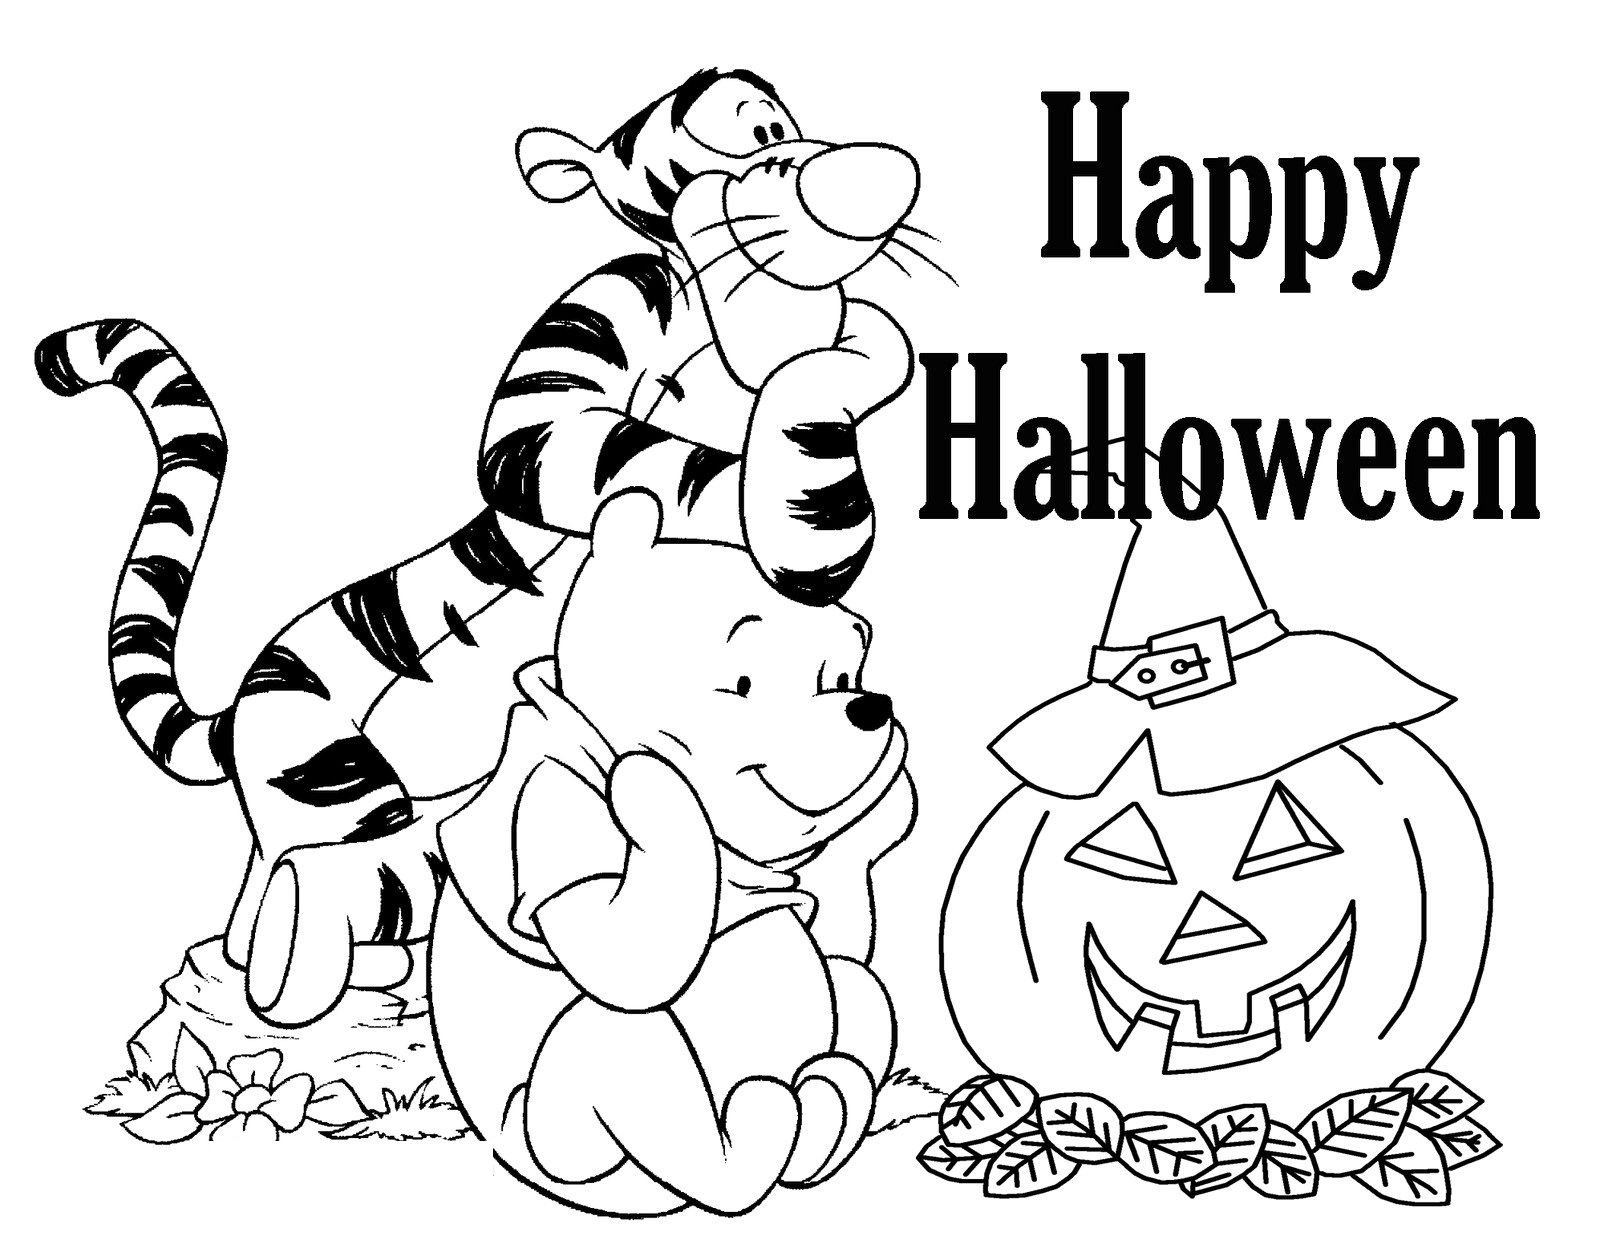 Halloween Coloring Pages Cute Character Halloween Coloring Pages Halloween Coloring Sheets Halloween Coloring